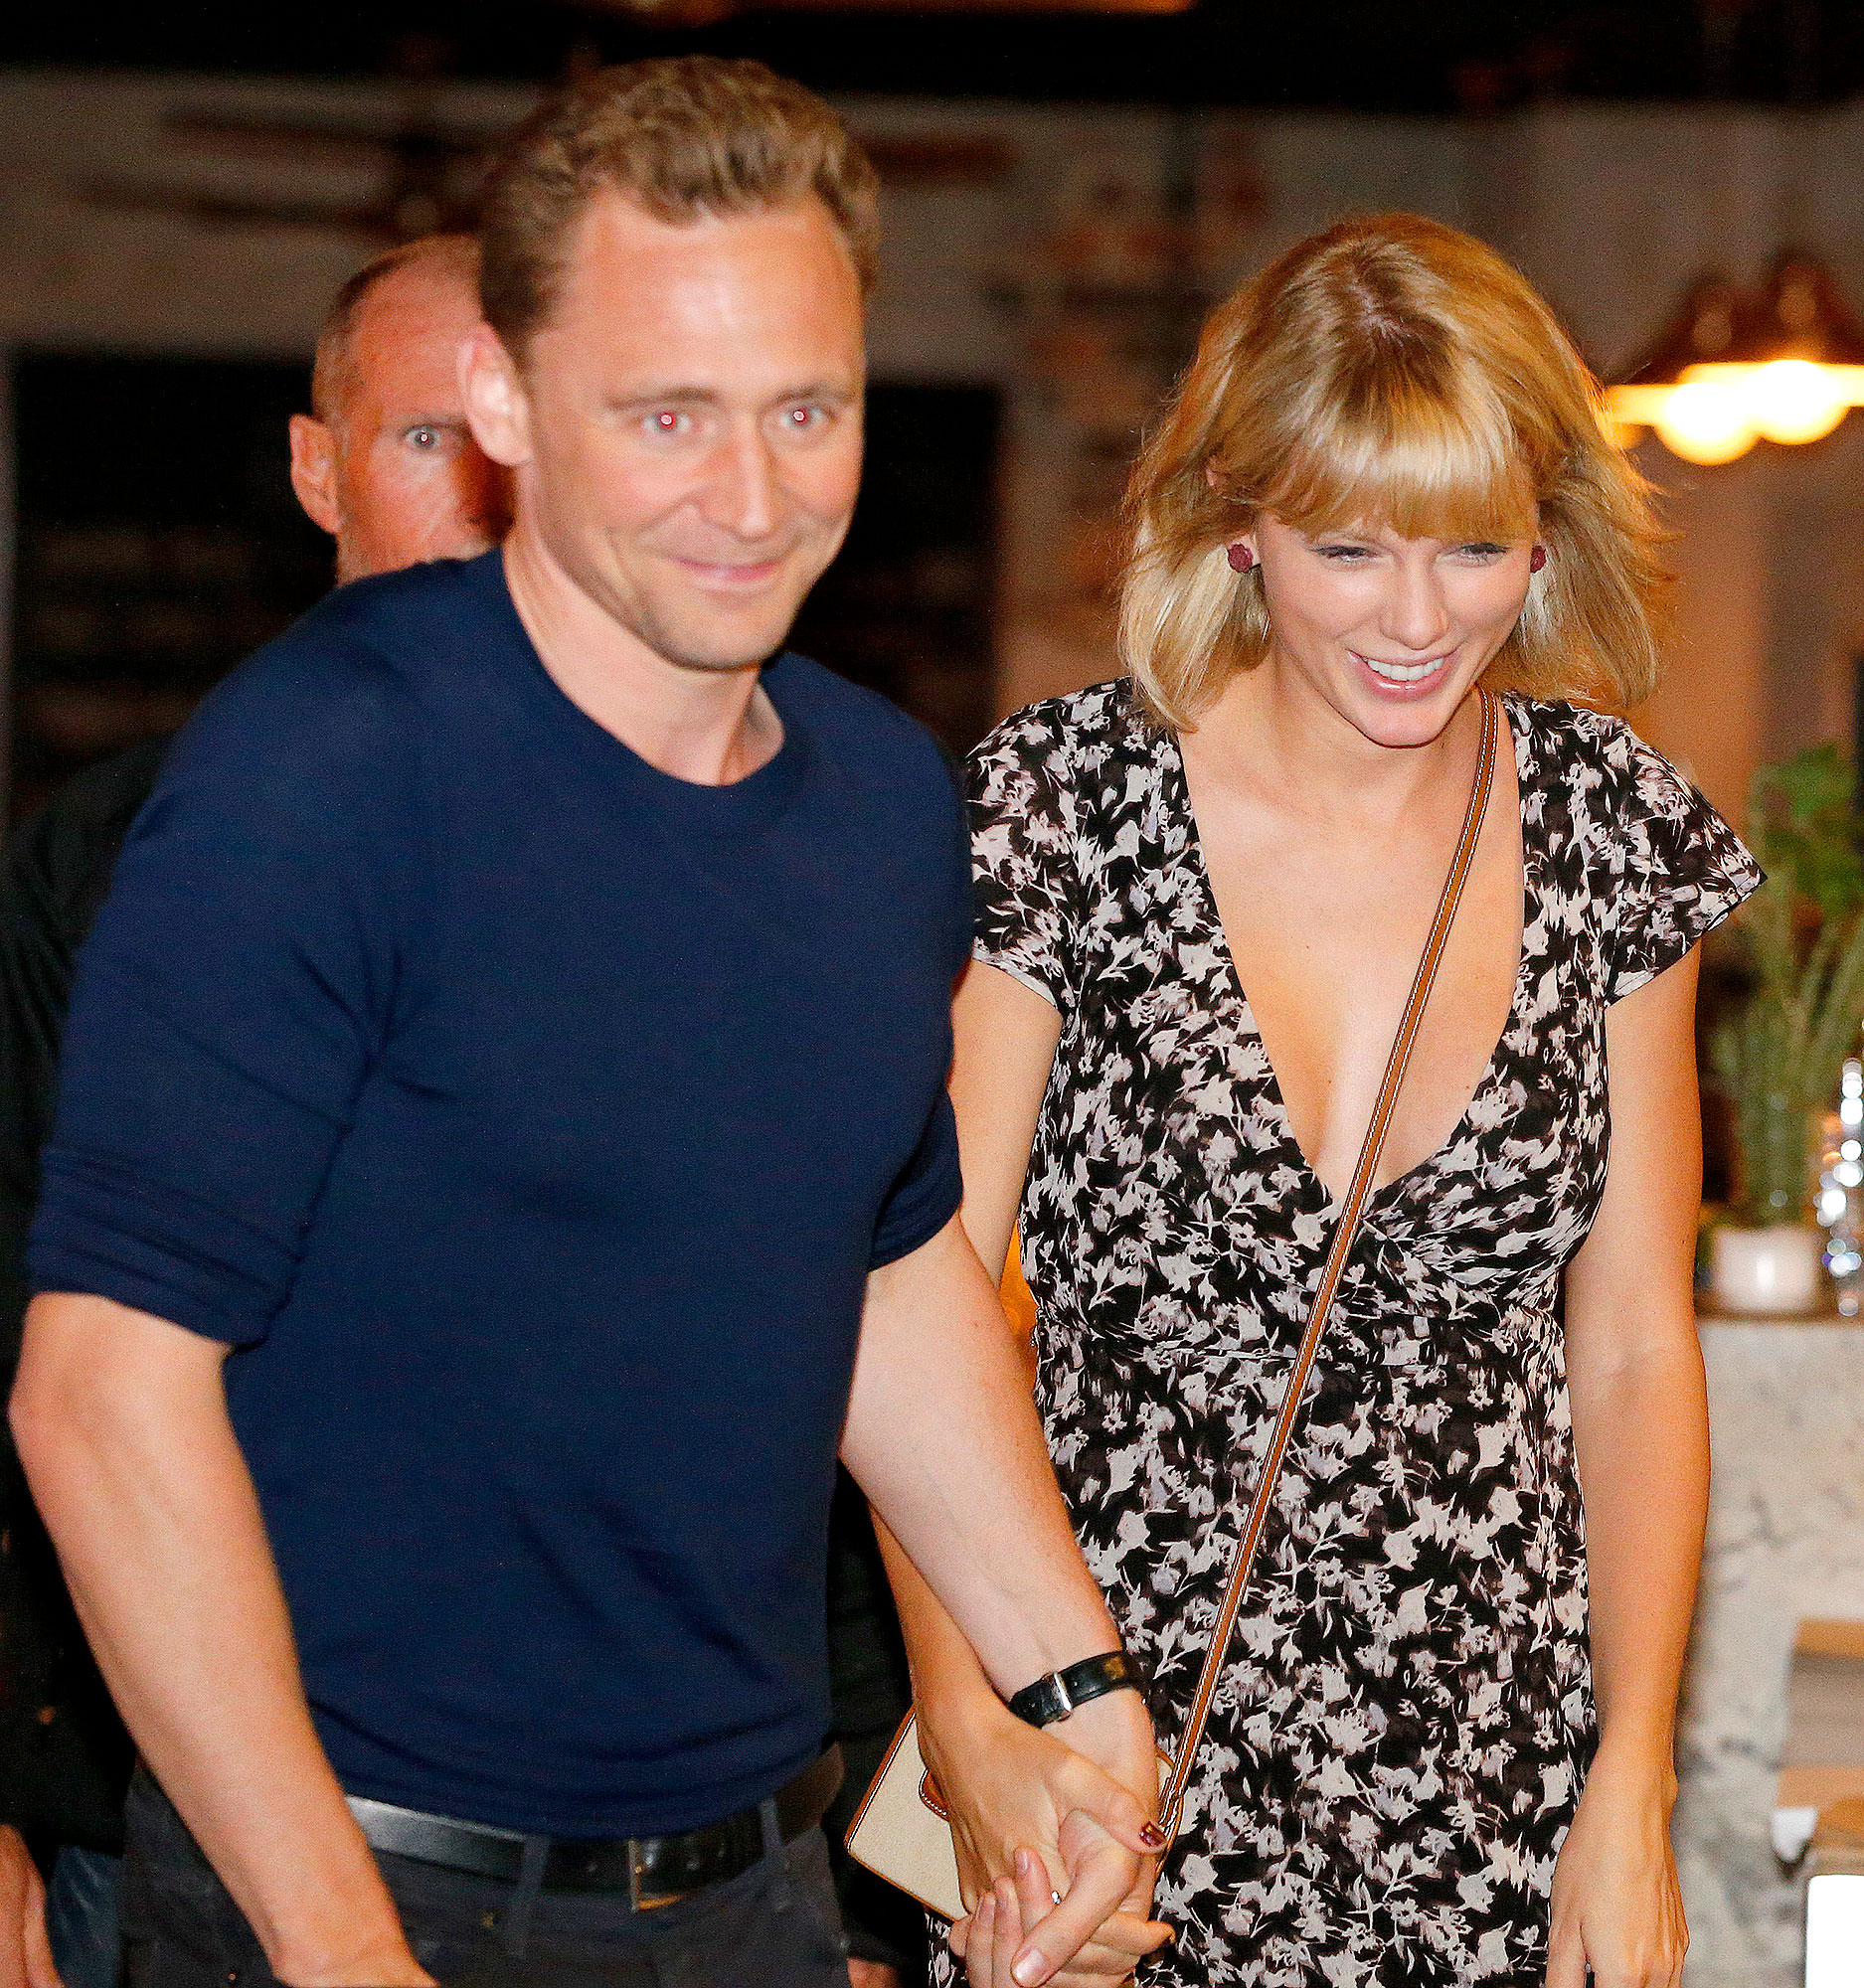 ctor Tom Hiddleston and singer Taylor Swift leave restaurant 'Gemelli Italian' in Broadbeach on the Gold Coast, Queensland.